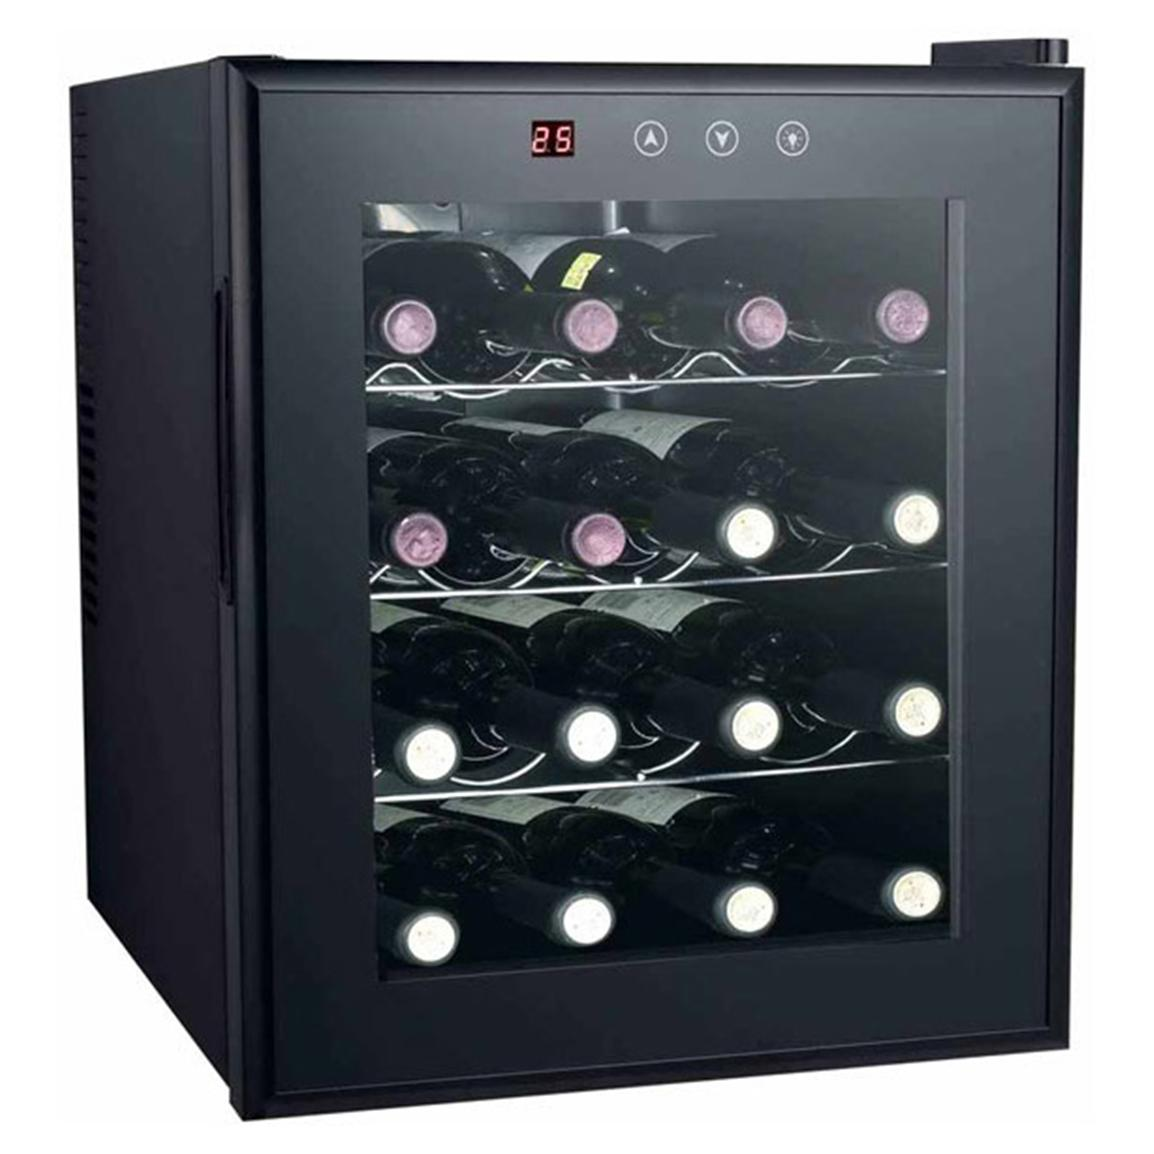 Sunpentown® 16-bottle Wine Cooler with Heating